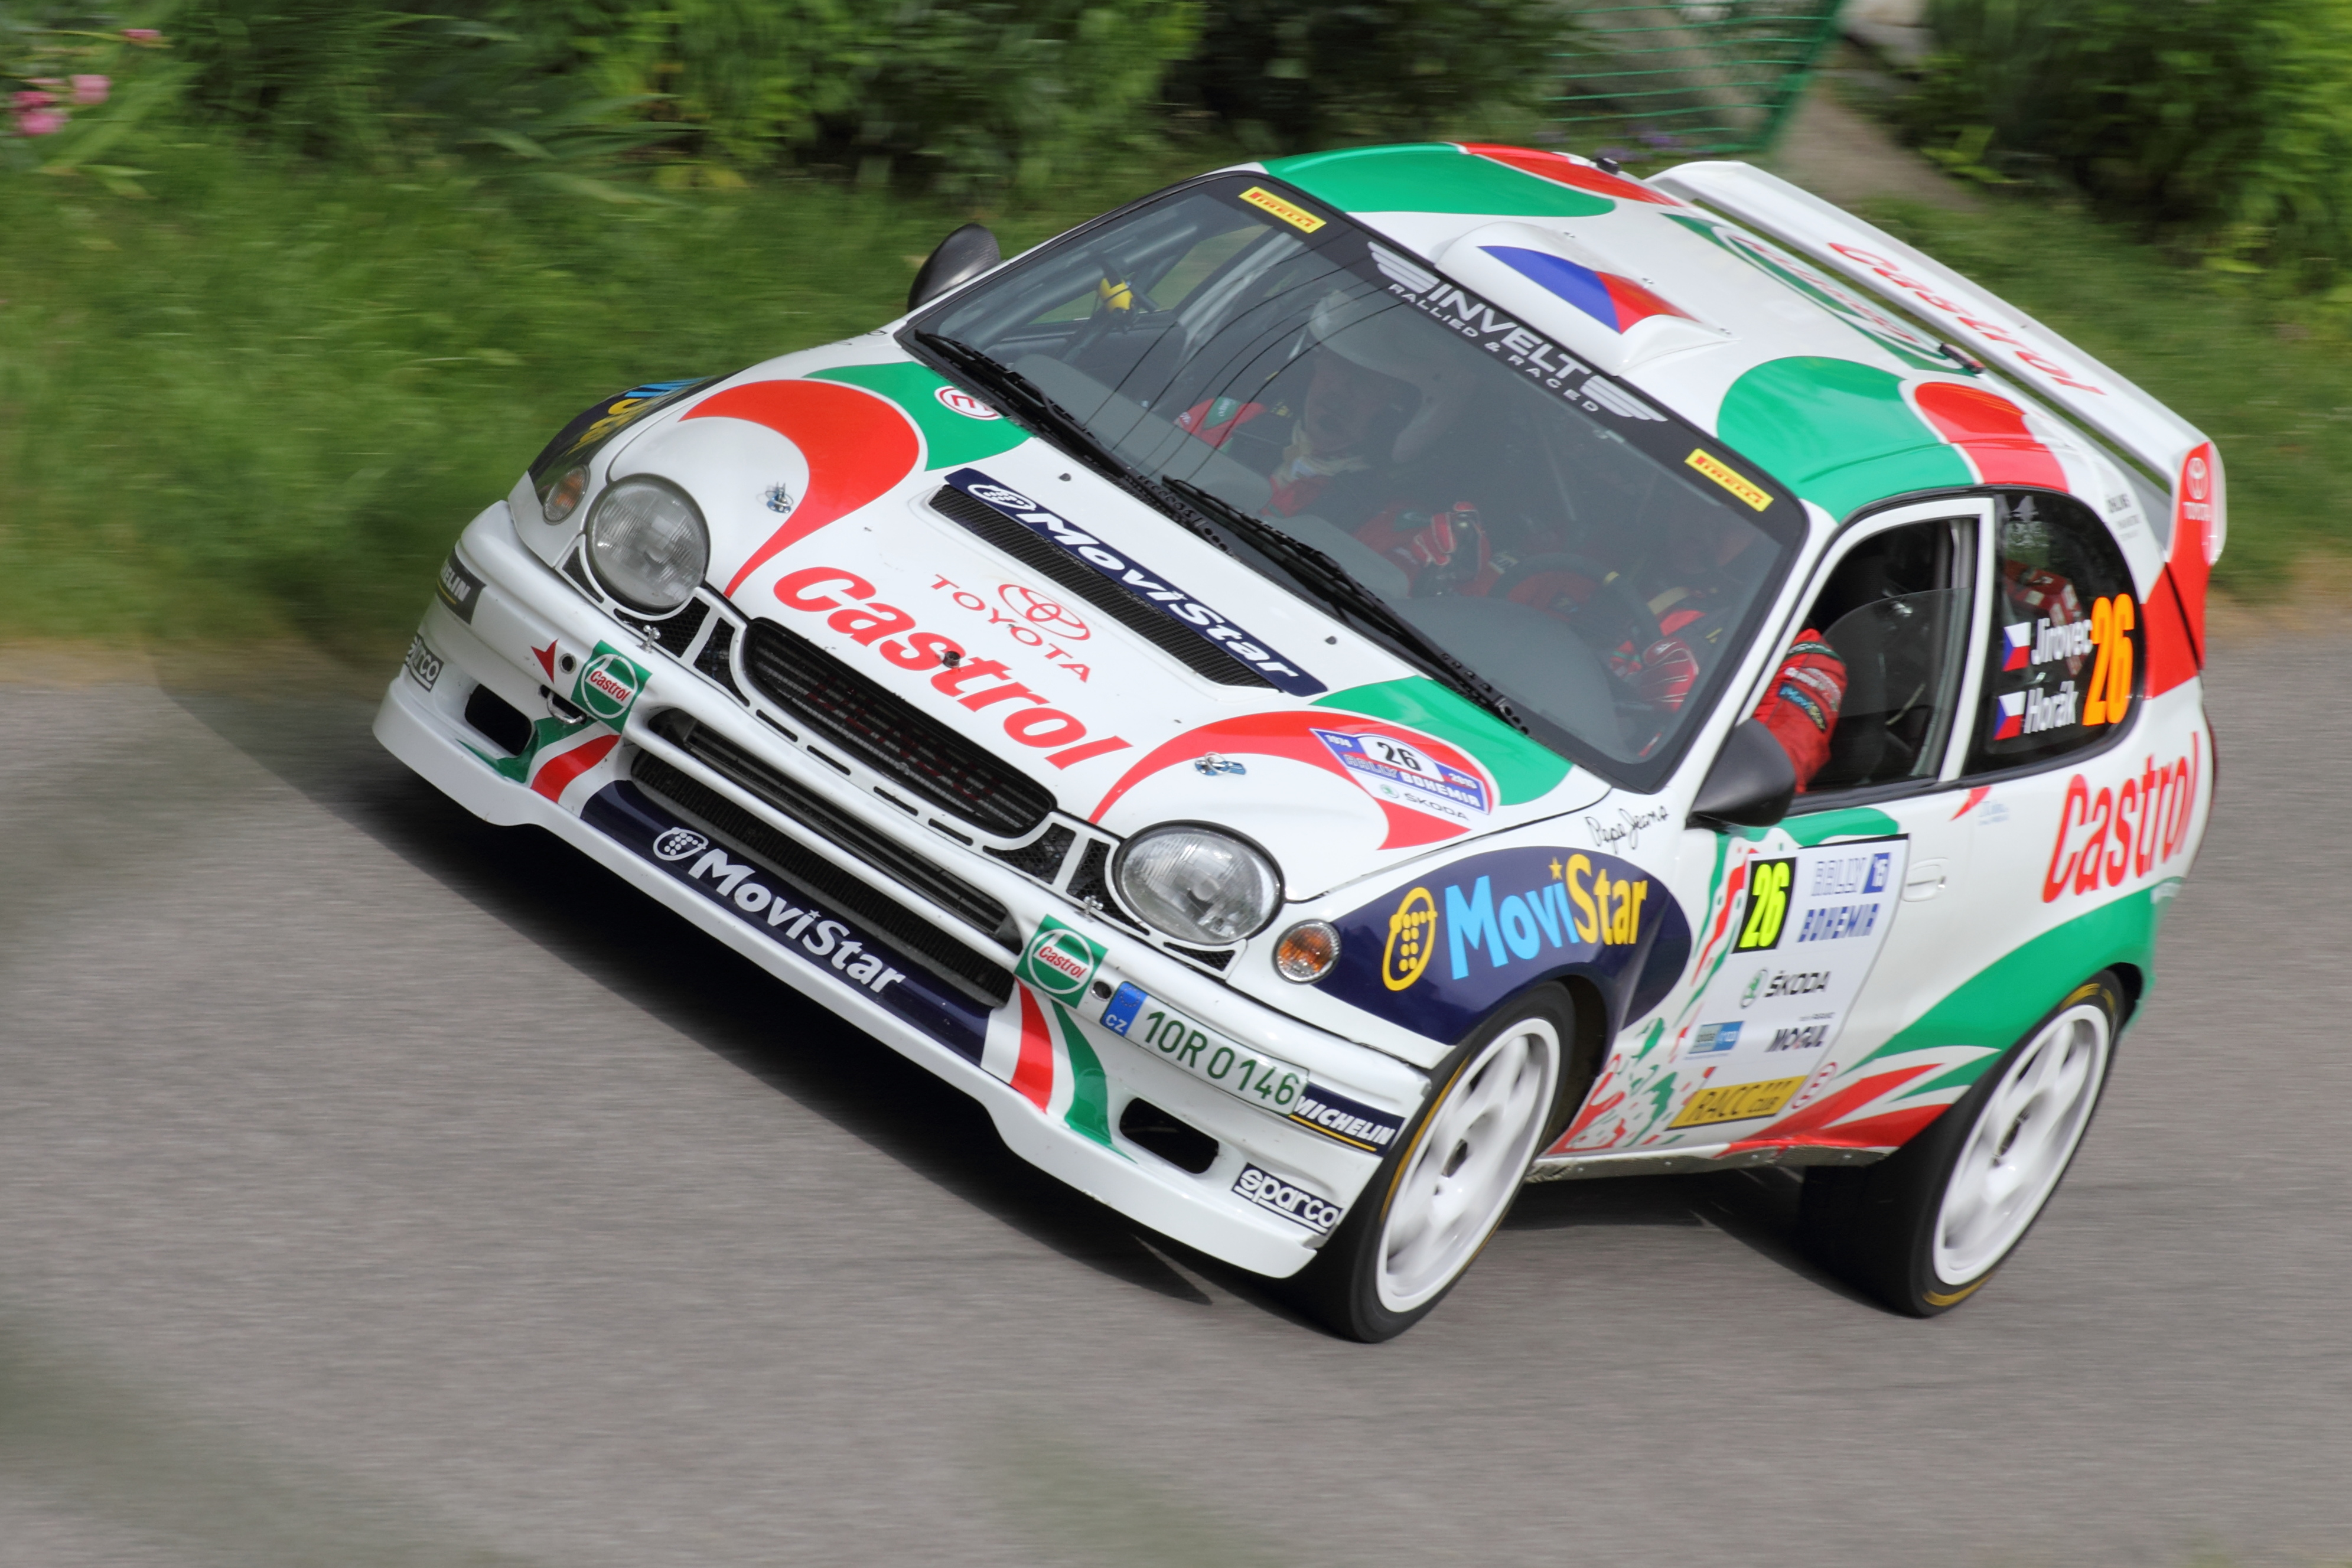 Rally Cars For Sale Scotland